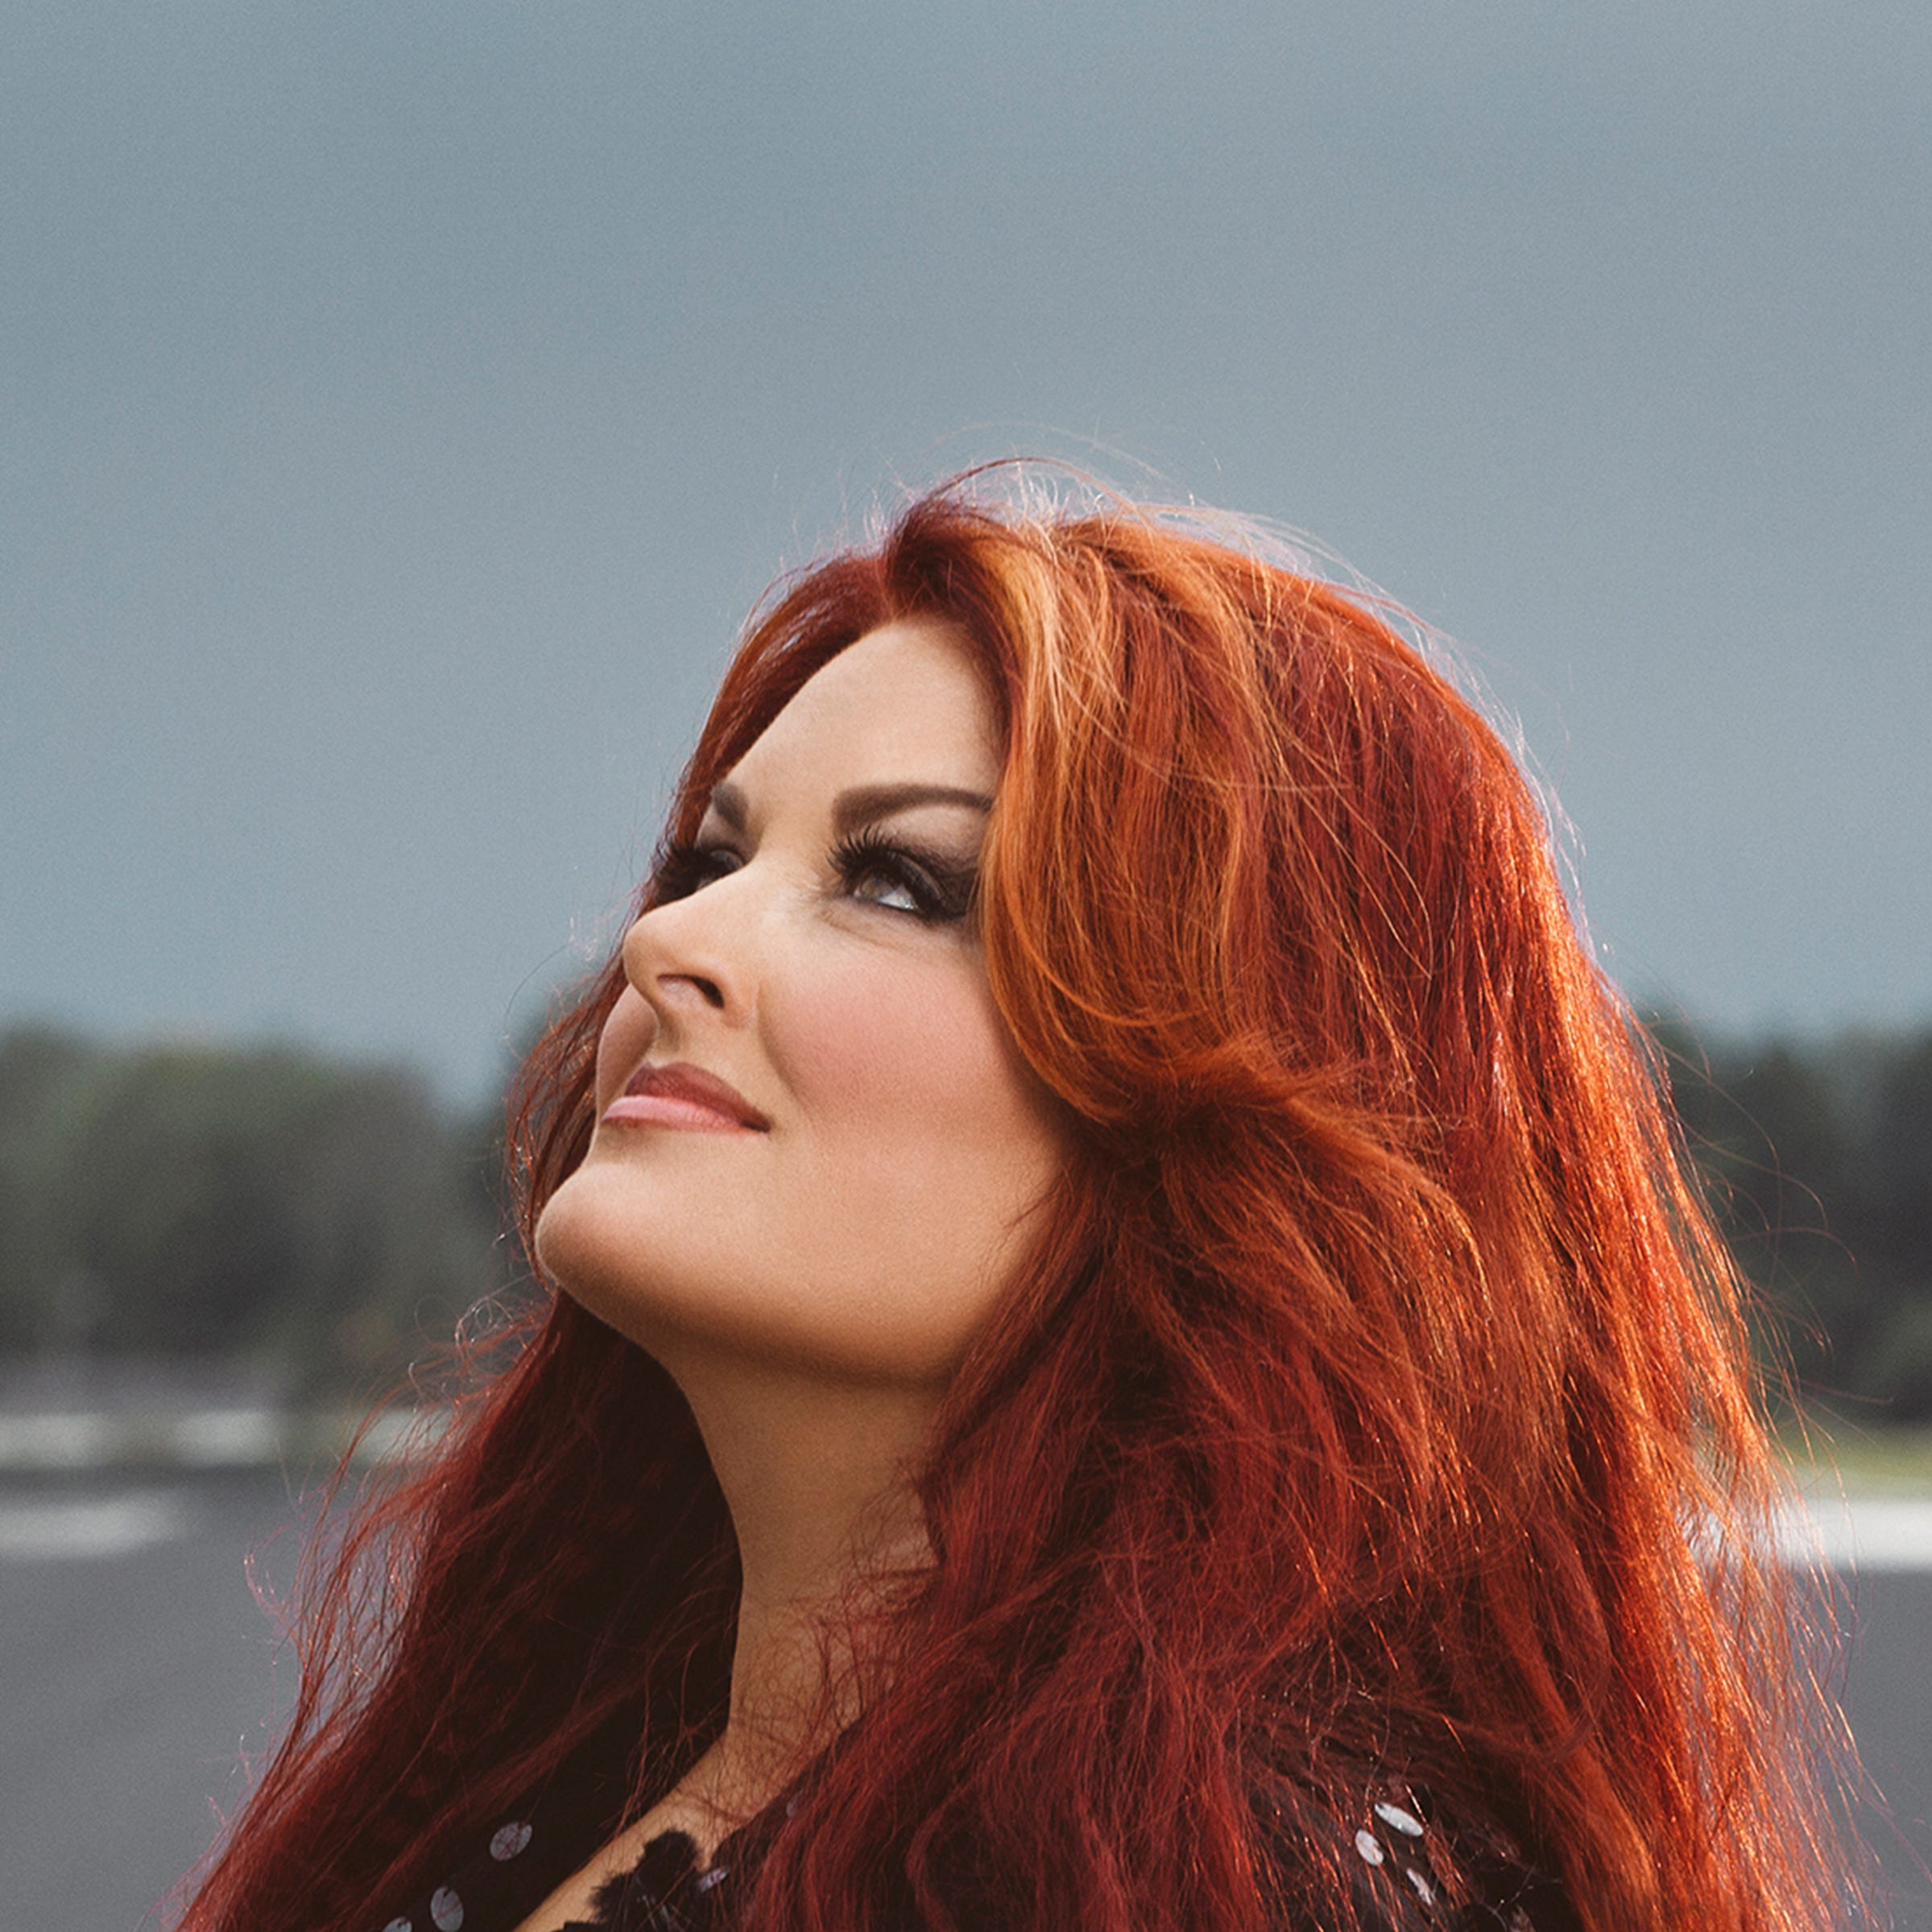 Wynonna Judd, Katharine McPhee, Postmodern Jukebox coming to Kohler